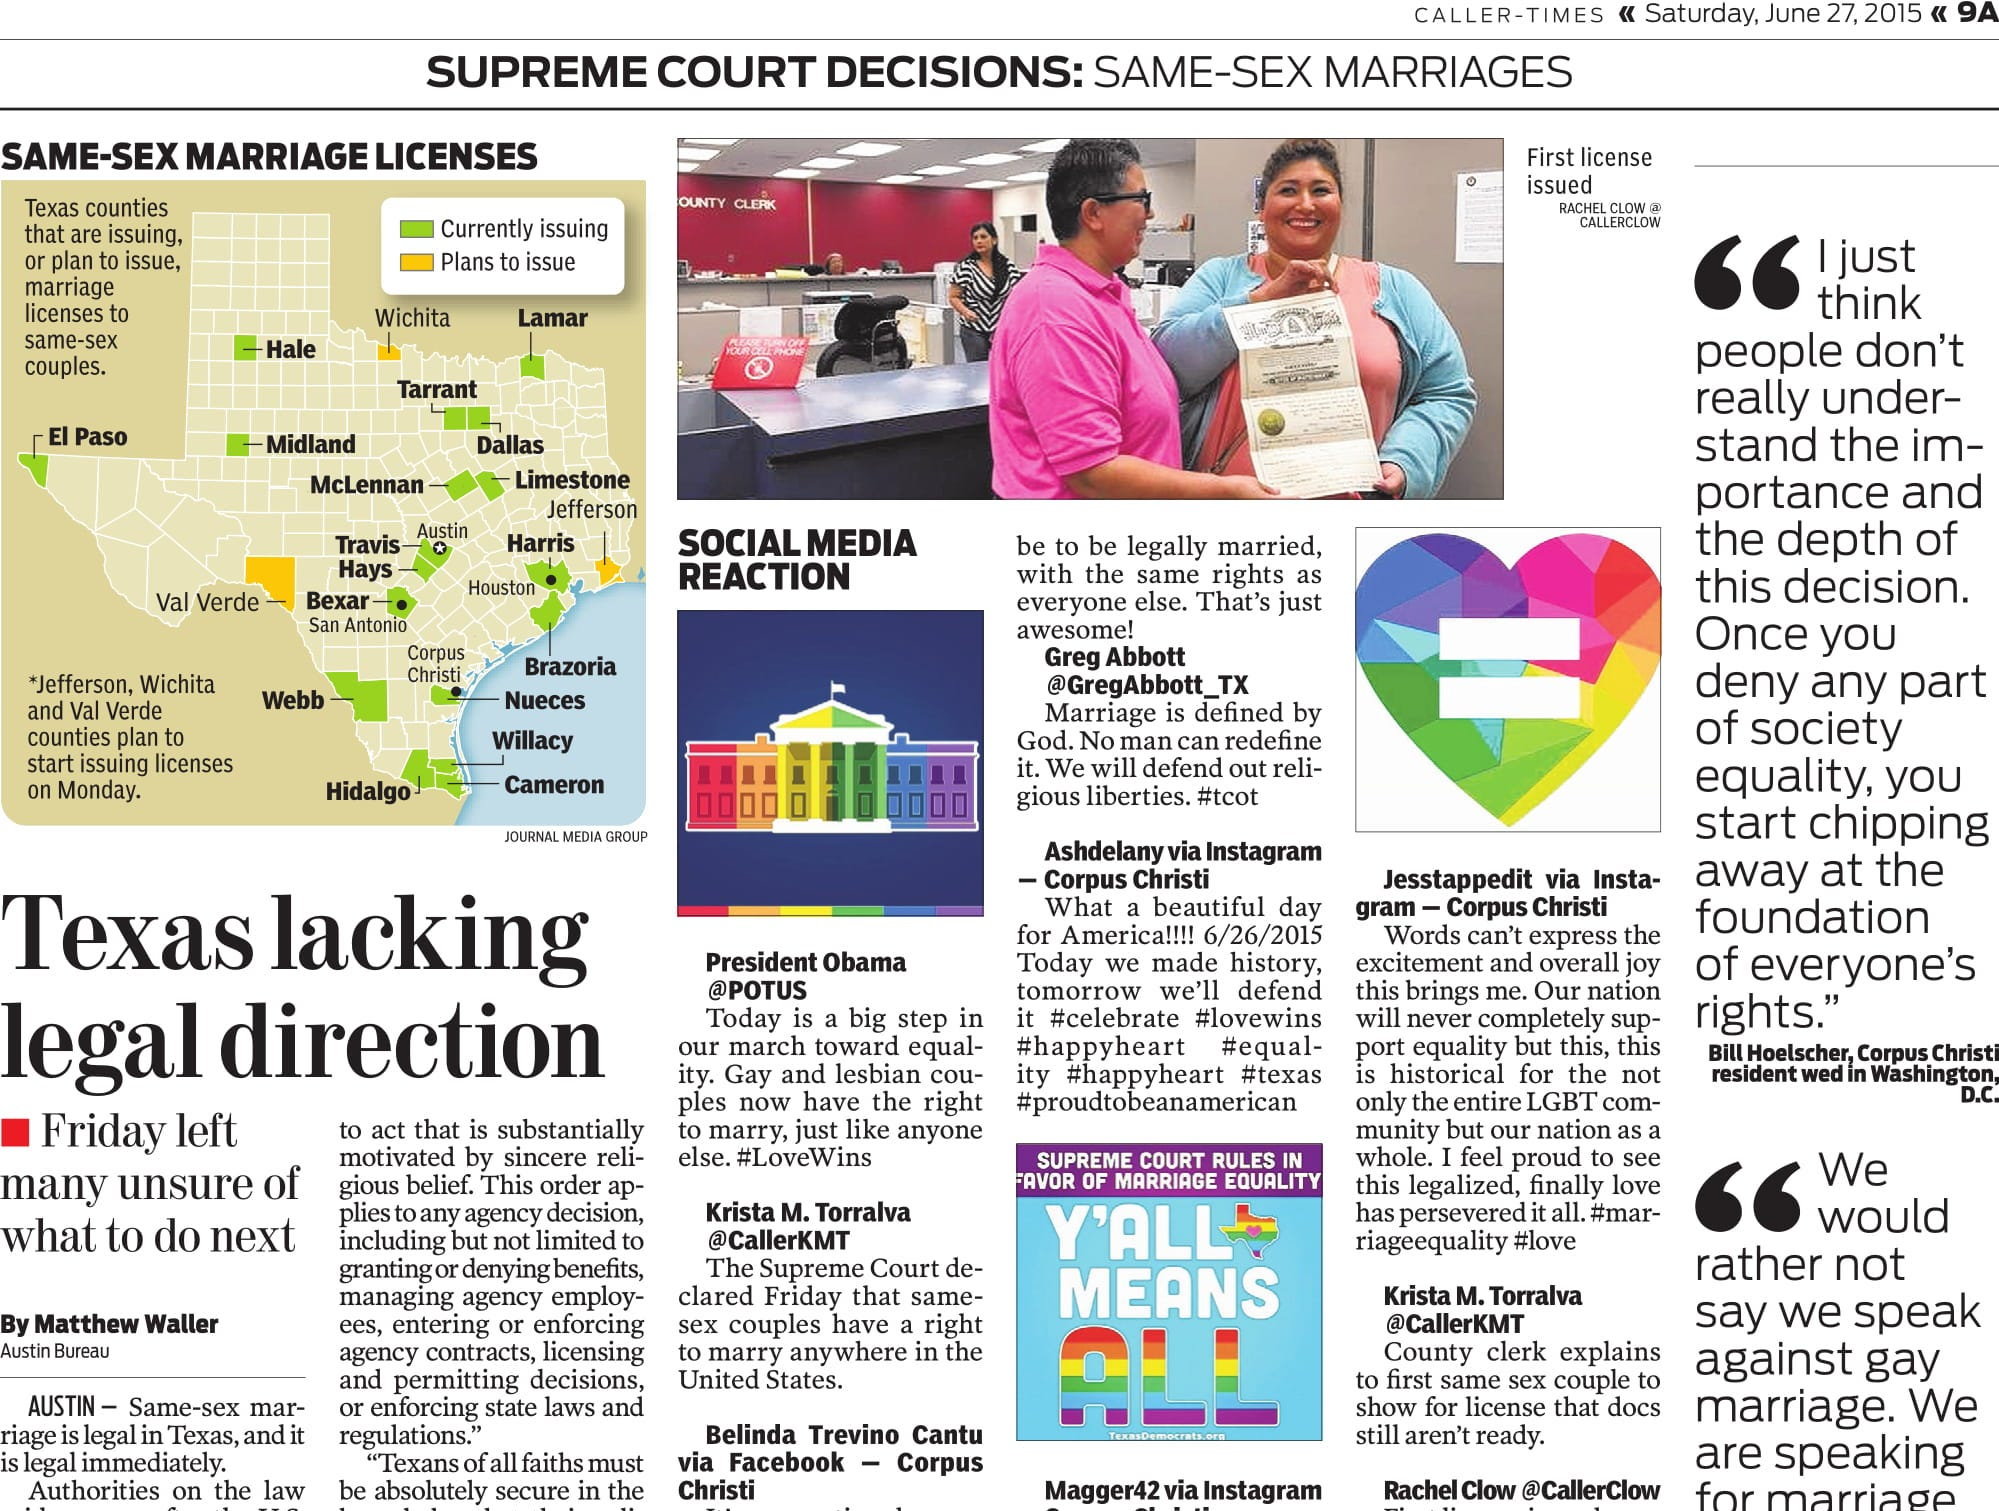 A page in the Caller-Times on June 27, 2015 after same-sex was legalized nationwide.